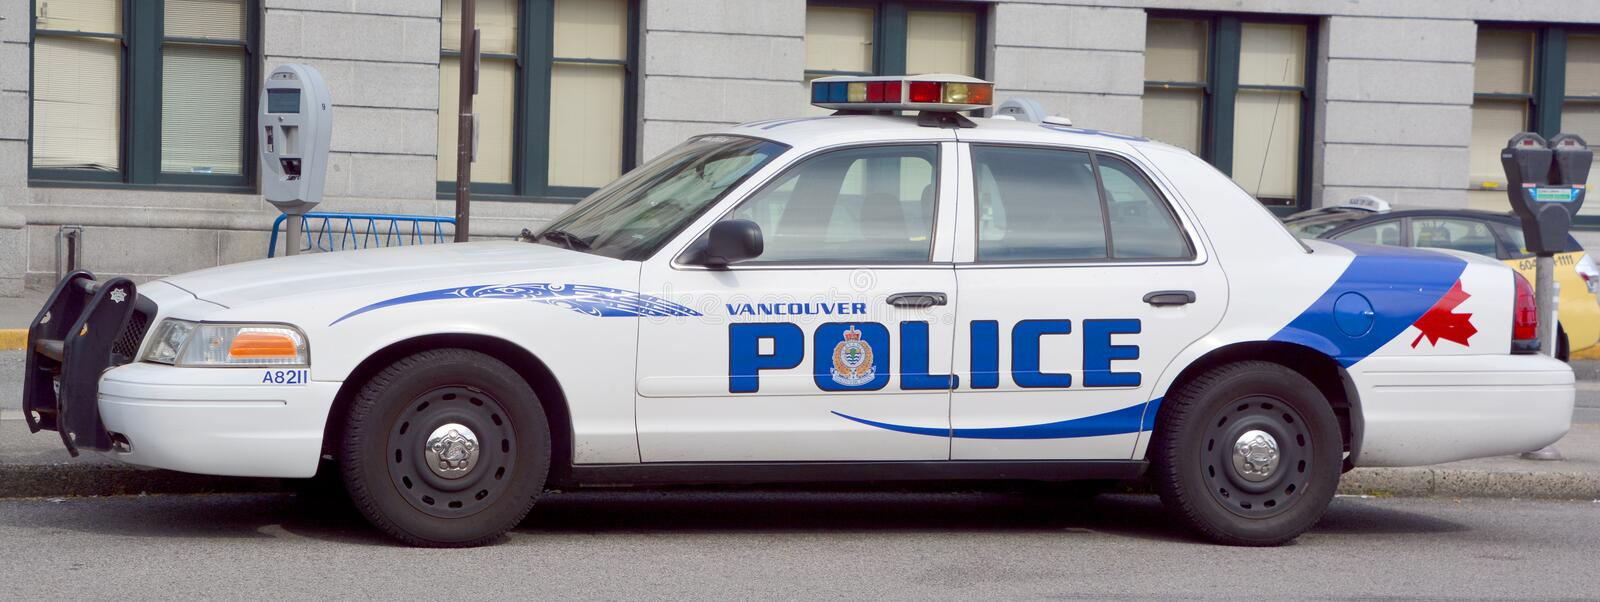 Car of the Vancouver Police Department. VANCOUVER BC CANADA JUNE 10 2015: Car of the Vancouver Police Department (VPD) is the police force for the City of royalty free stock photo